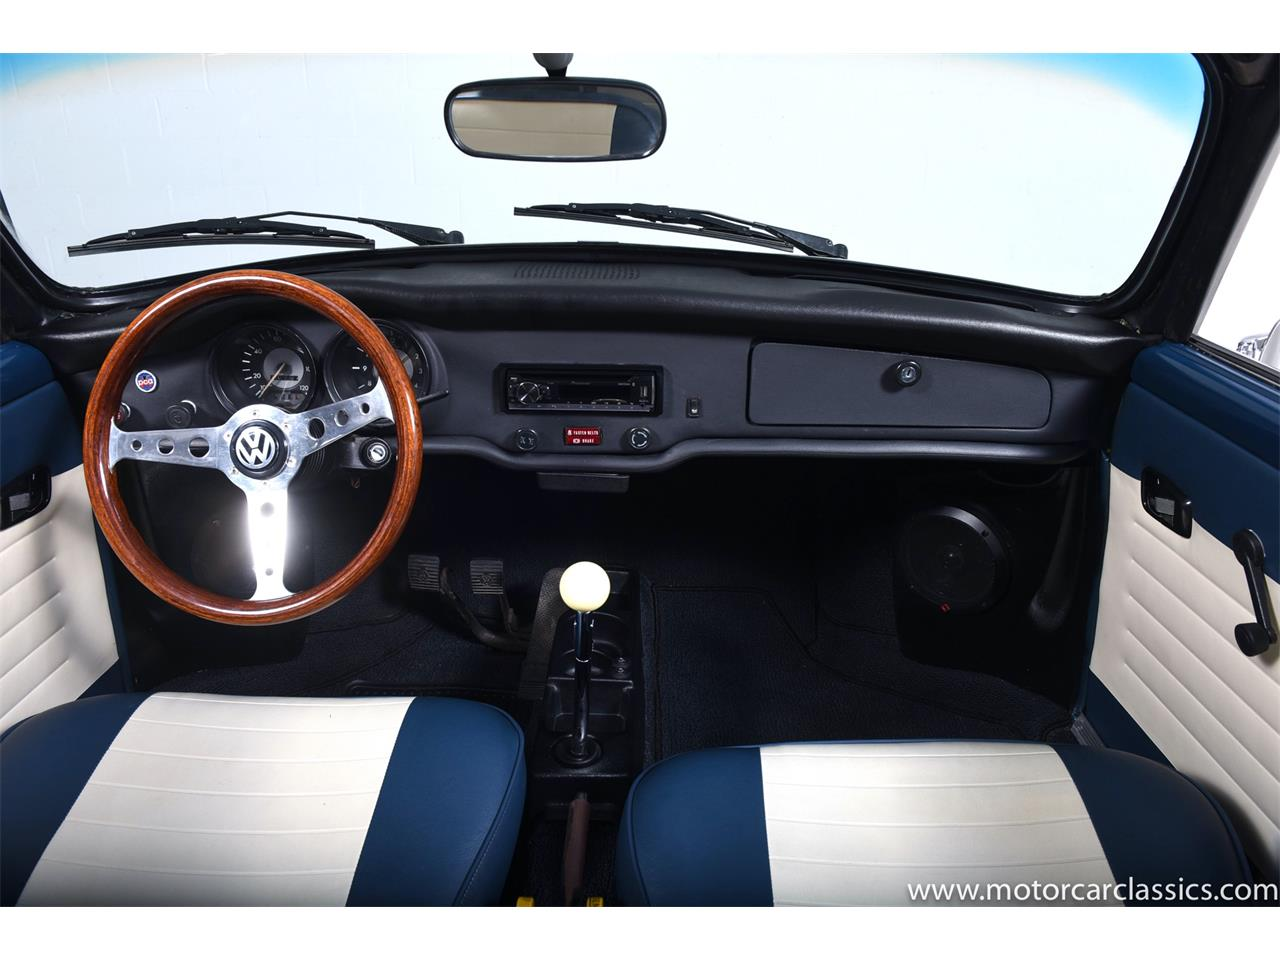 1974 Volkswagen Karmann Ghia (CC-1331058) for sale in Farmingdale, New York